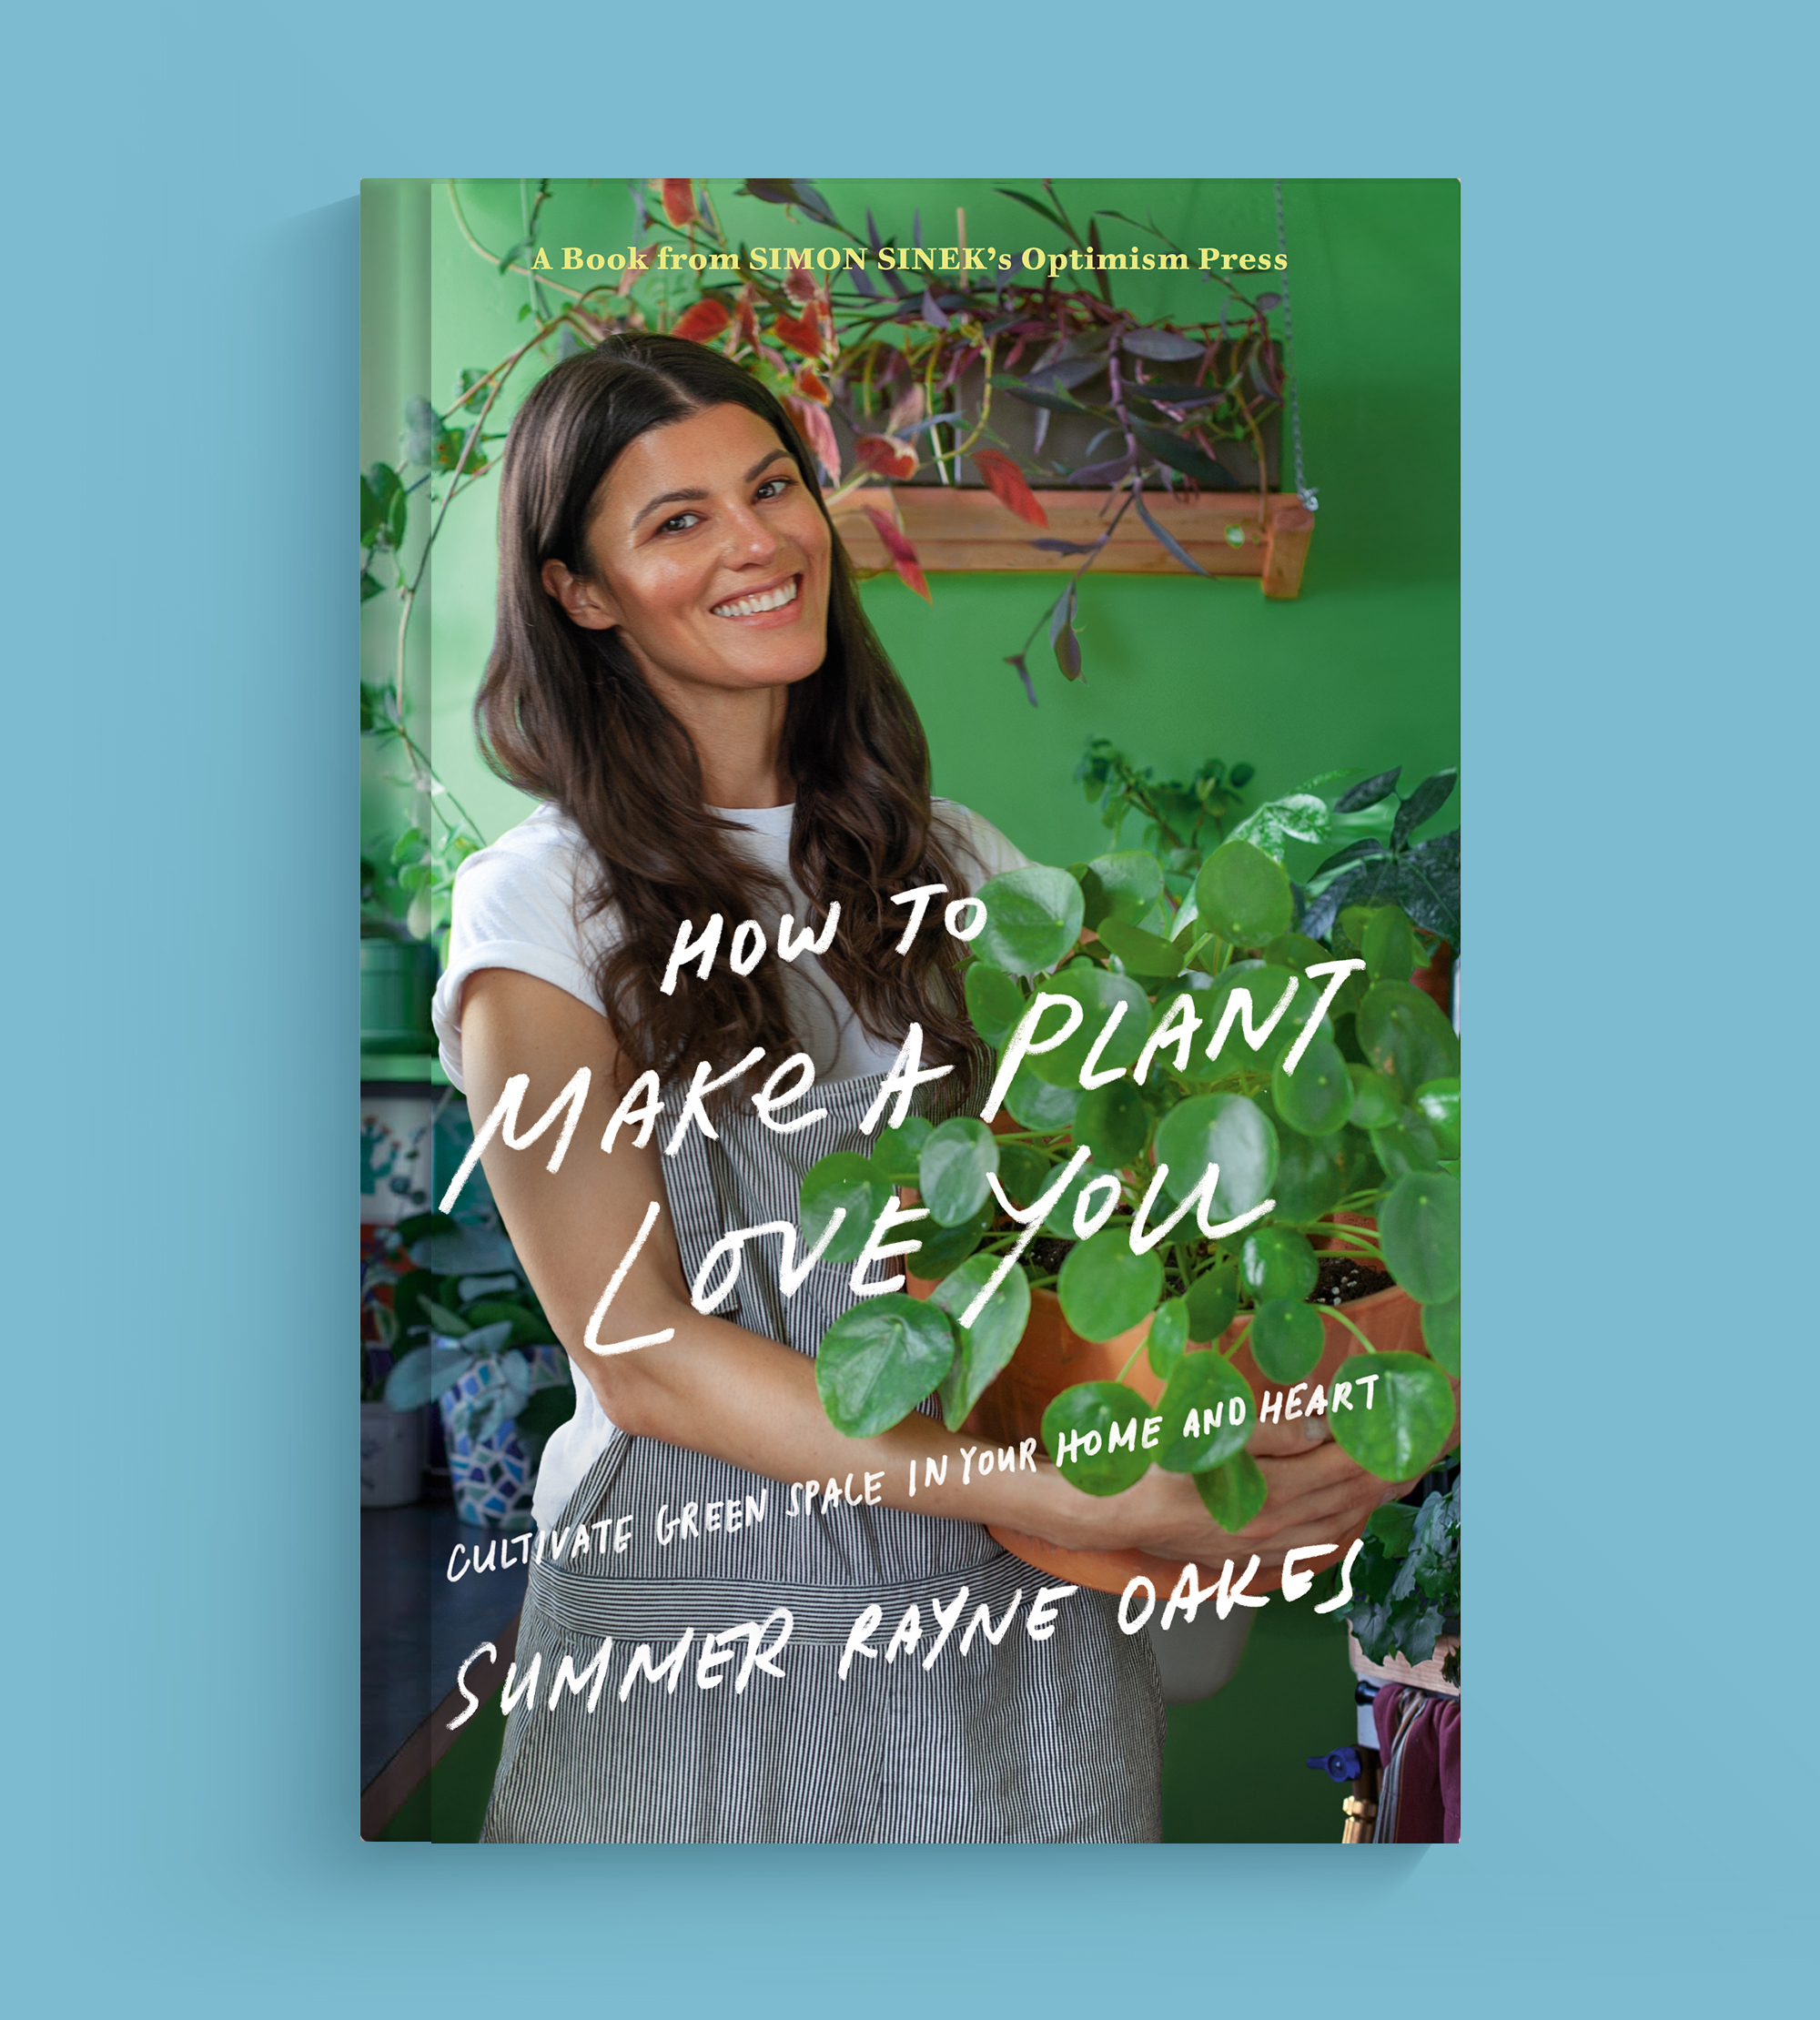 Summer-Rayne-Oakes-BookCover-How-to-Make-A-Plant-Love-You-00007.jpg